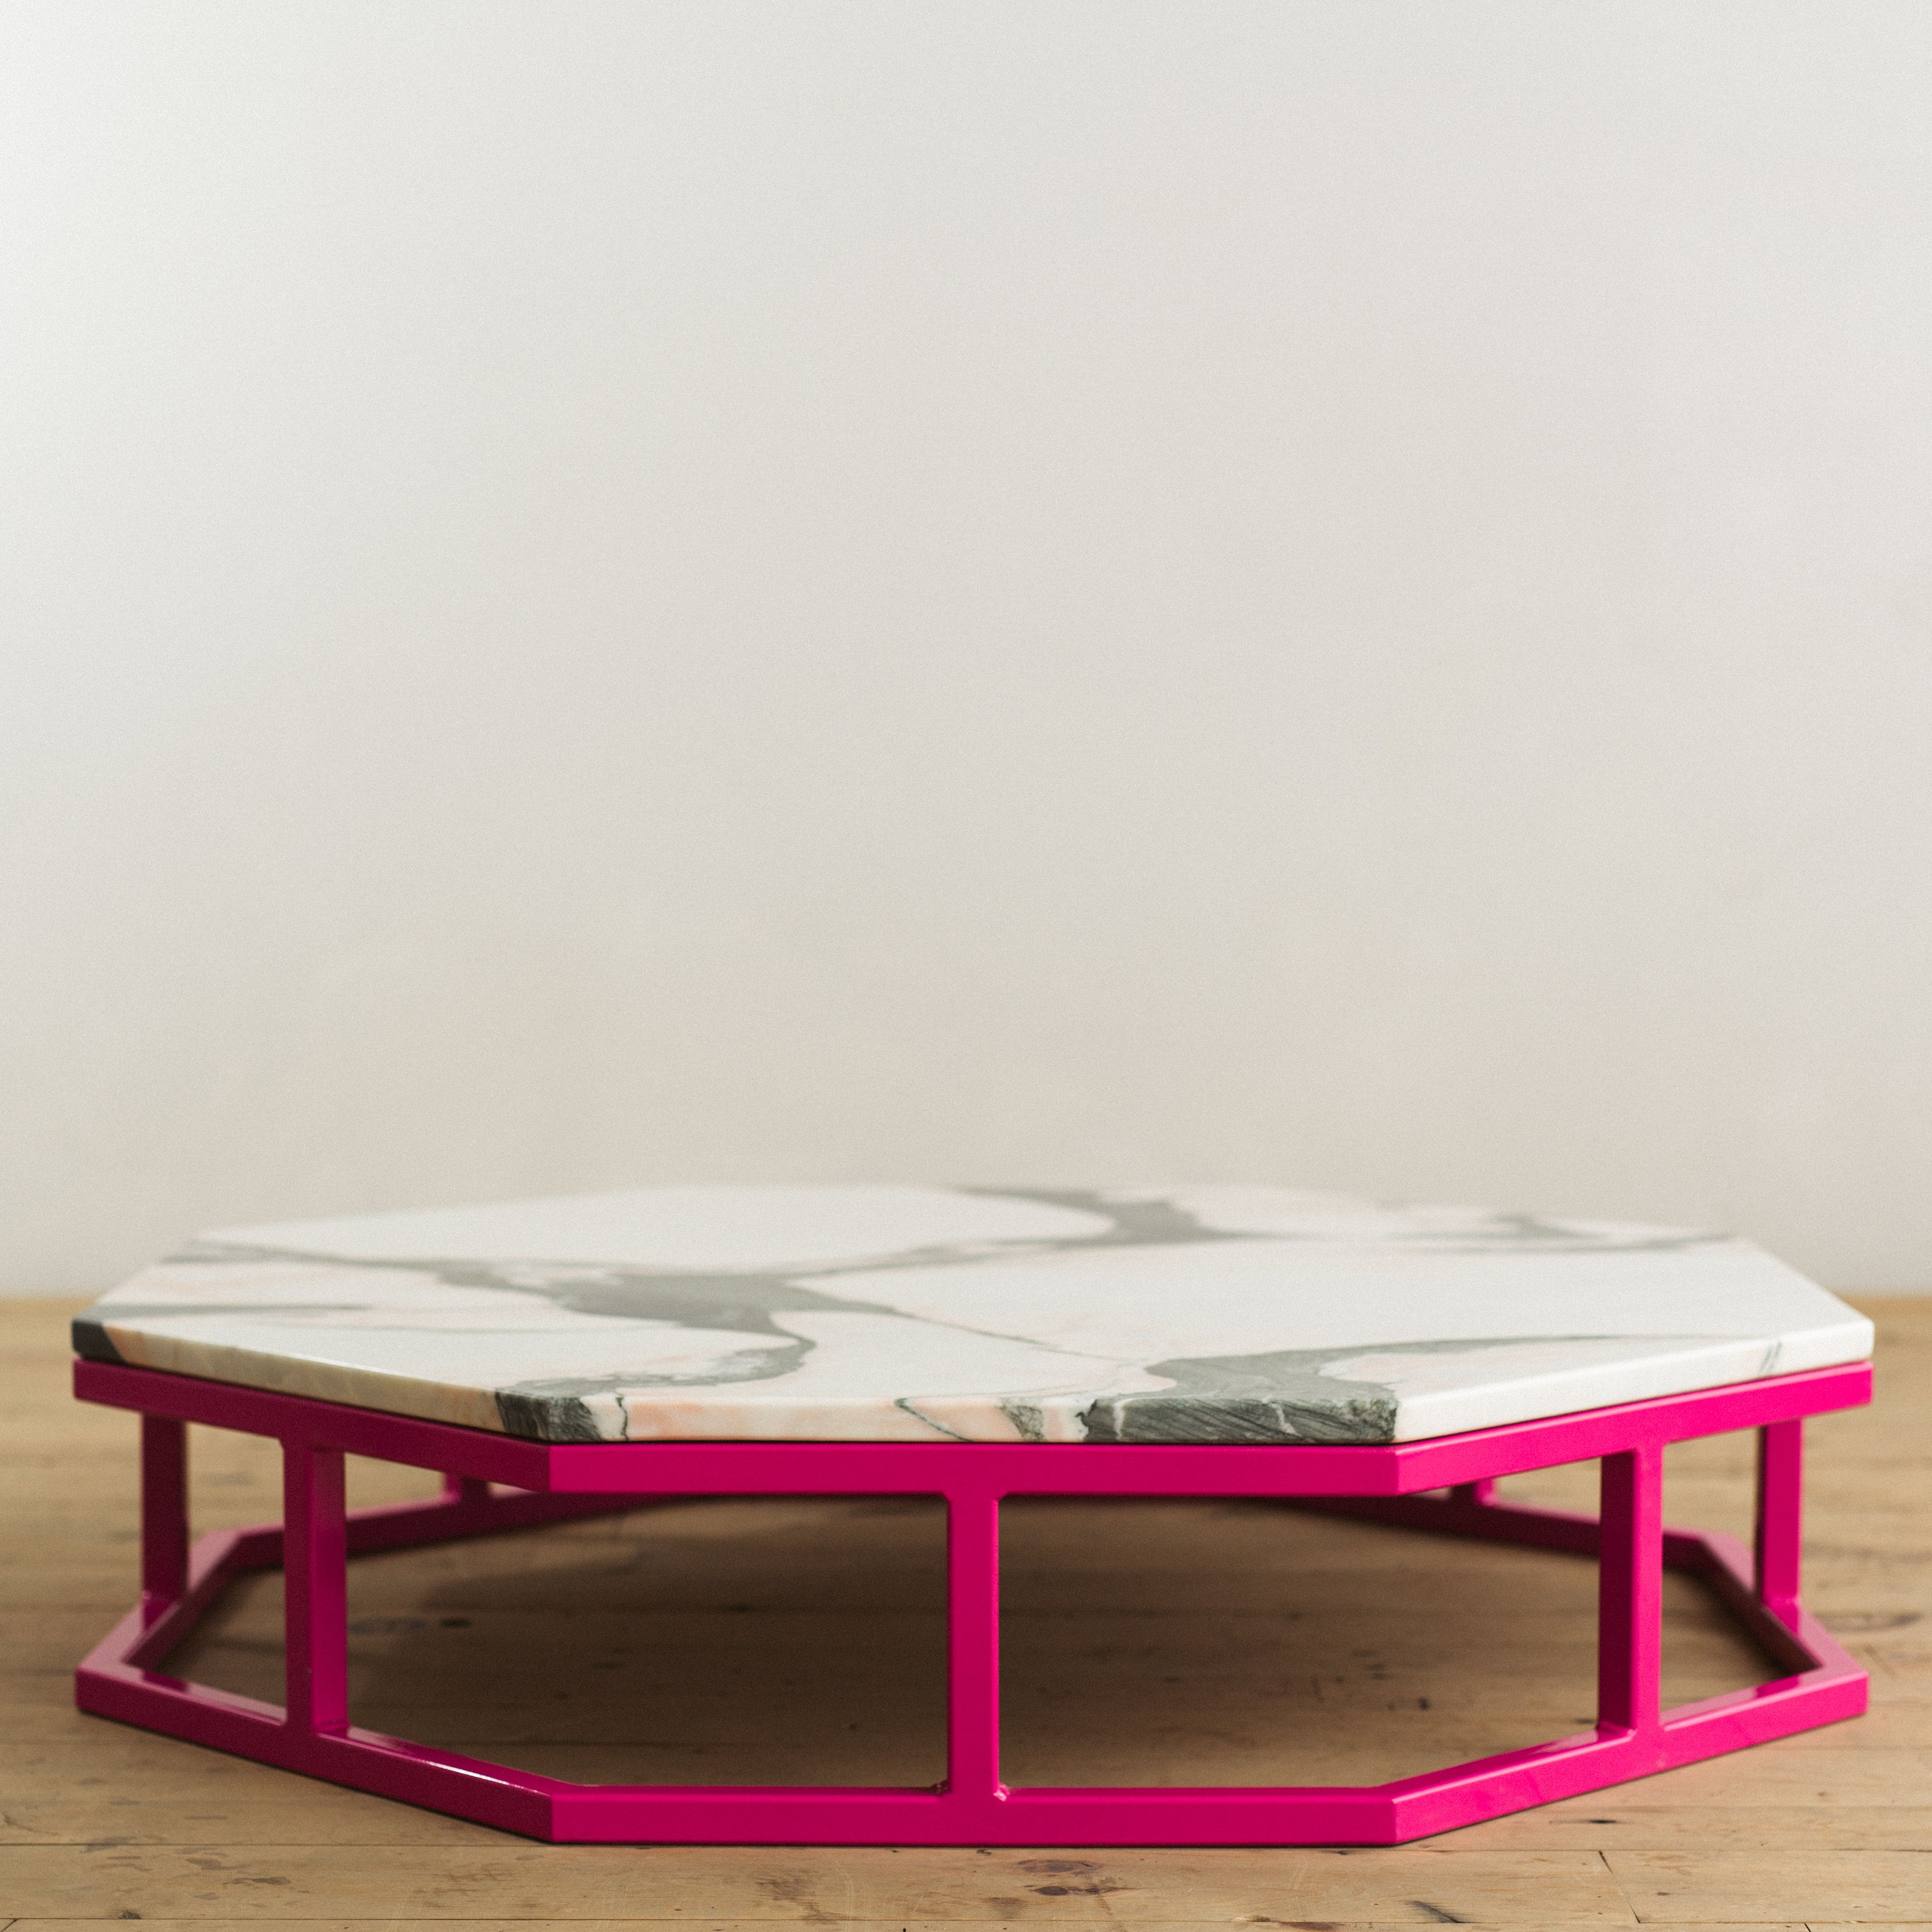 octagon steel marble coffee table pink 2